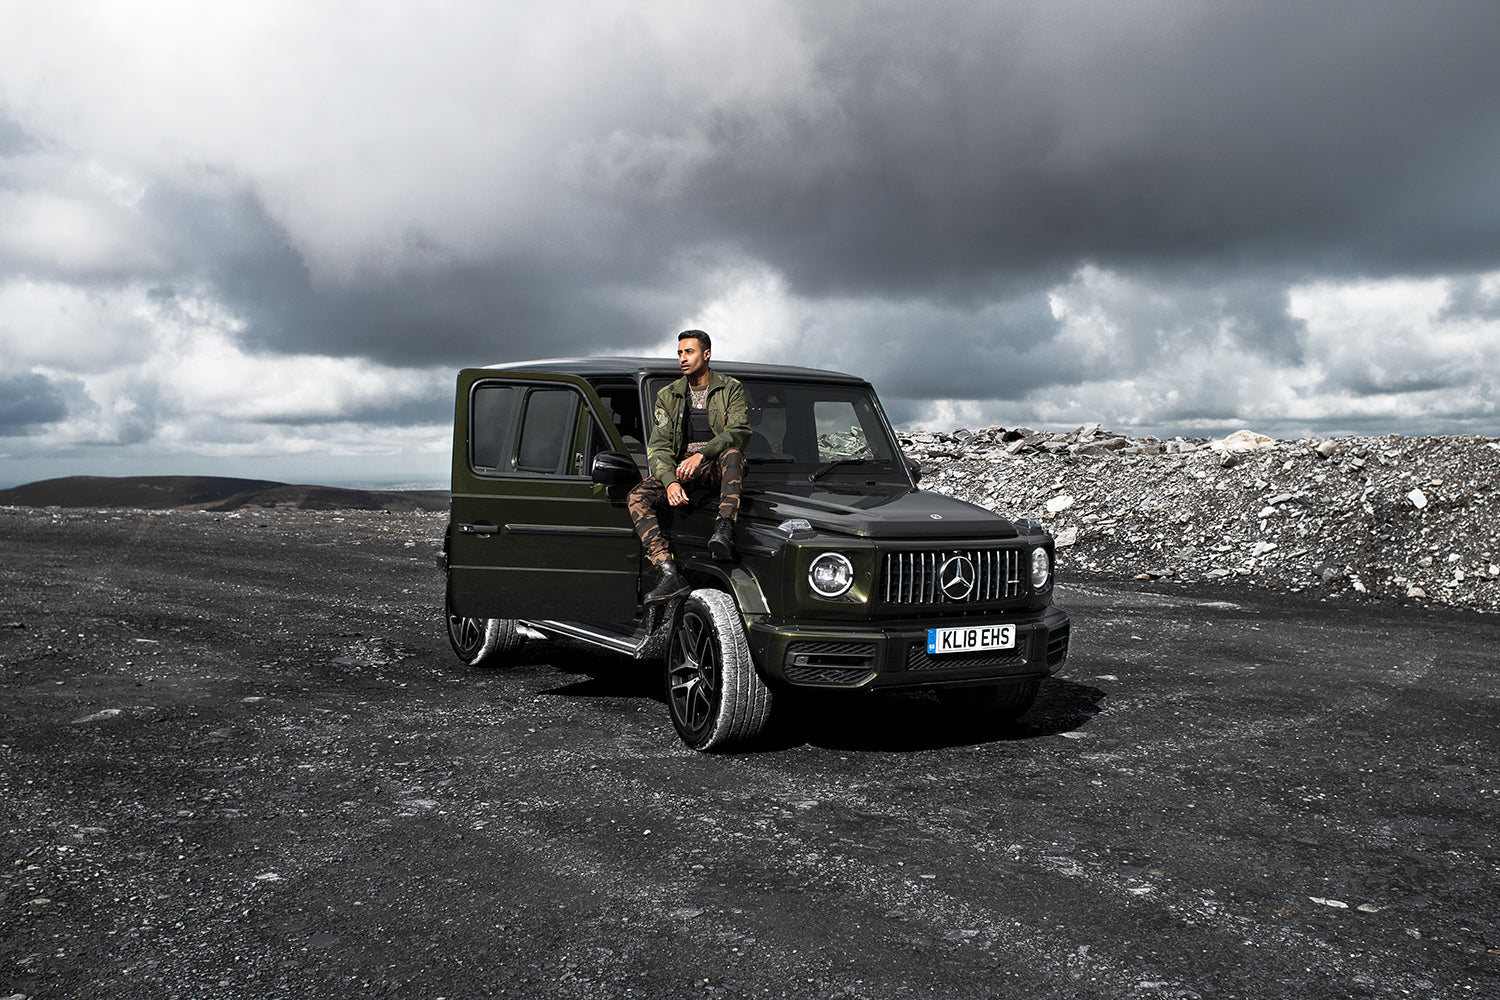 Rahul Patel Blog Mercedes Benz UK AMG G63 Car Snowdonia Wales UK Alpha Industries Dr Martens Rahul Patel Collection Jewellery Lee Cooper